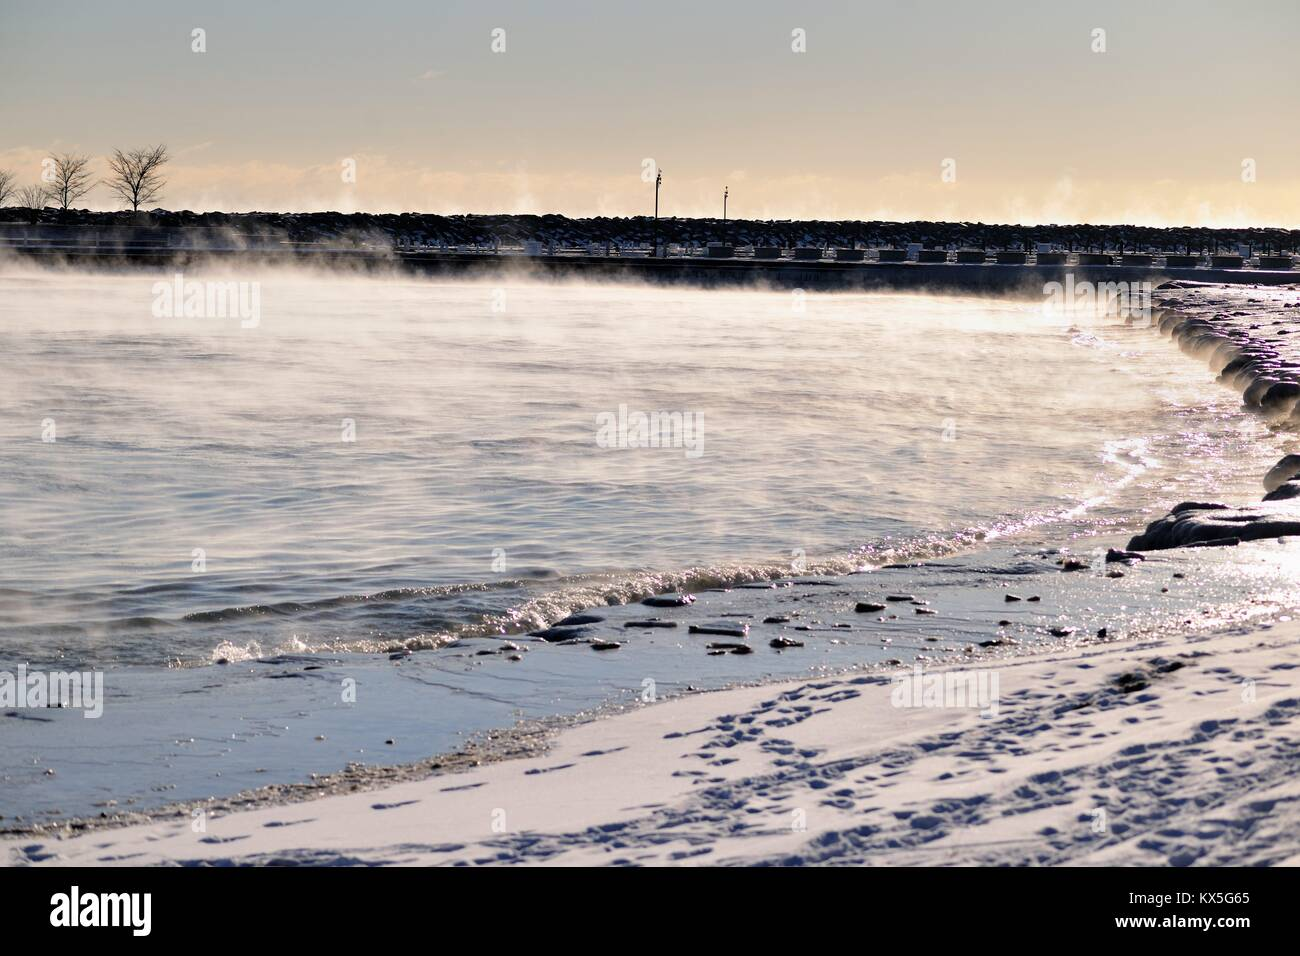 Vapor rises from still flowing water as turns to Ice on Lake Michigan waters in Chicago's 31st Street Harbor. - Stock Image